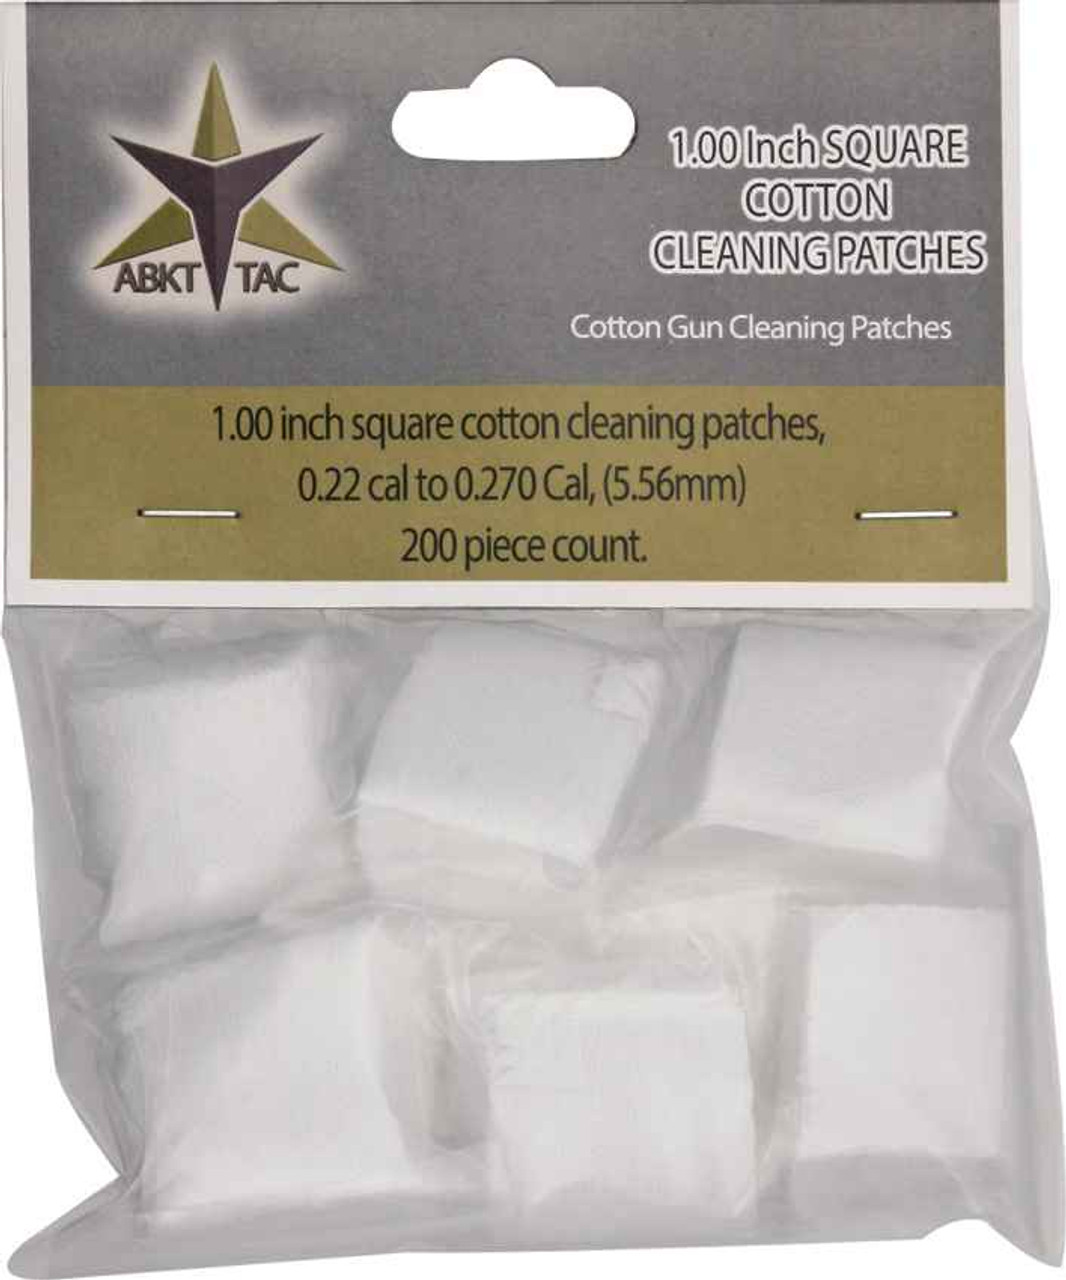 ABKT AB0051 Tac Square Cotton Cleaning Patches 200 Piece Count, Designed for 0.22 cal. to 0.270 cal.